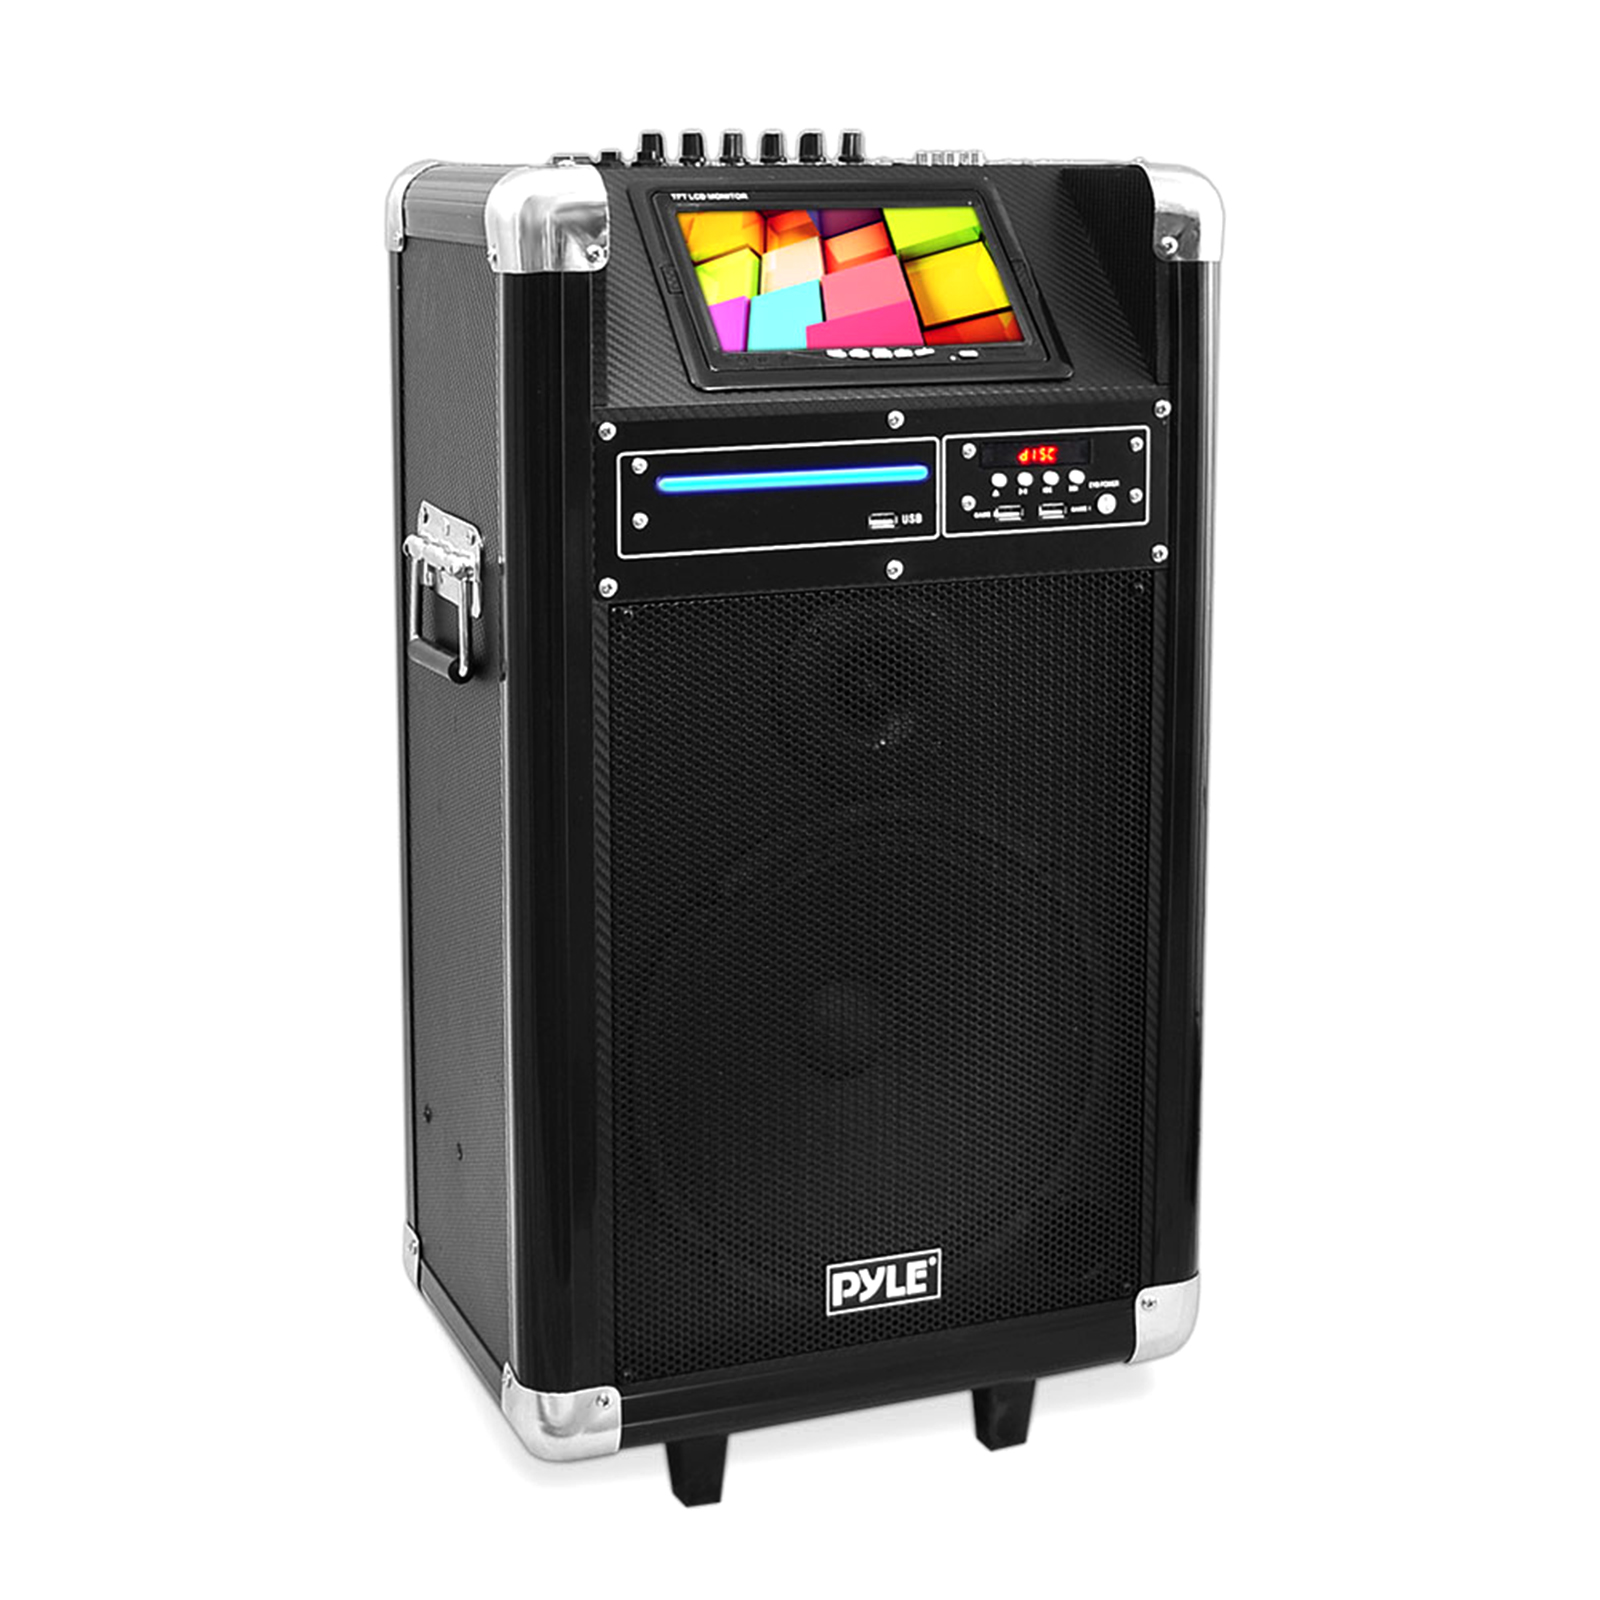 "Karaoke Vibe Portable BT Multimedia PA System with Built-in Battery, Cordless Microphone, 7"" Display Screen, 10"" Subwoofer, 400 Watt"